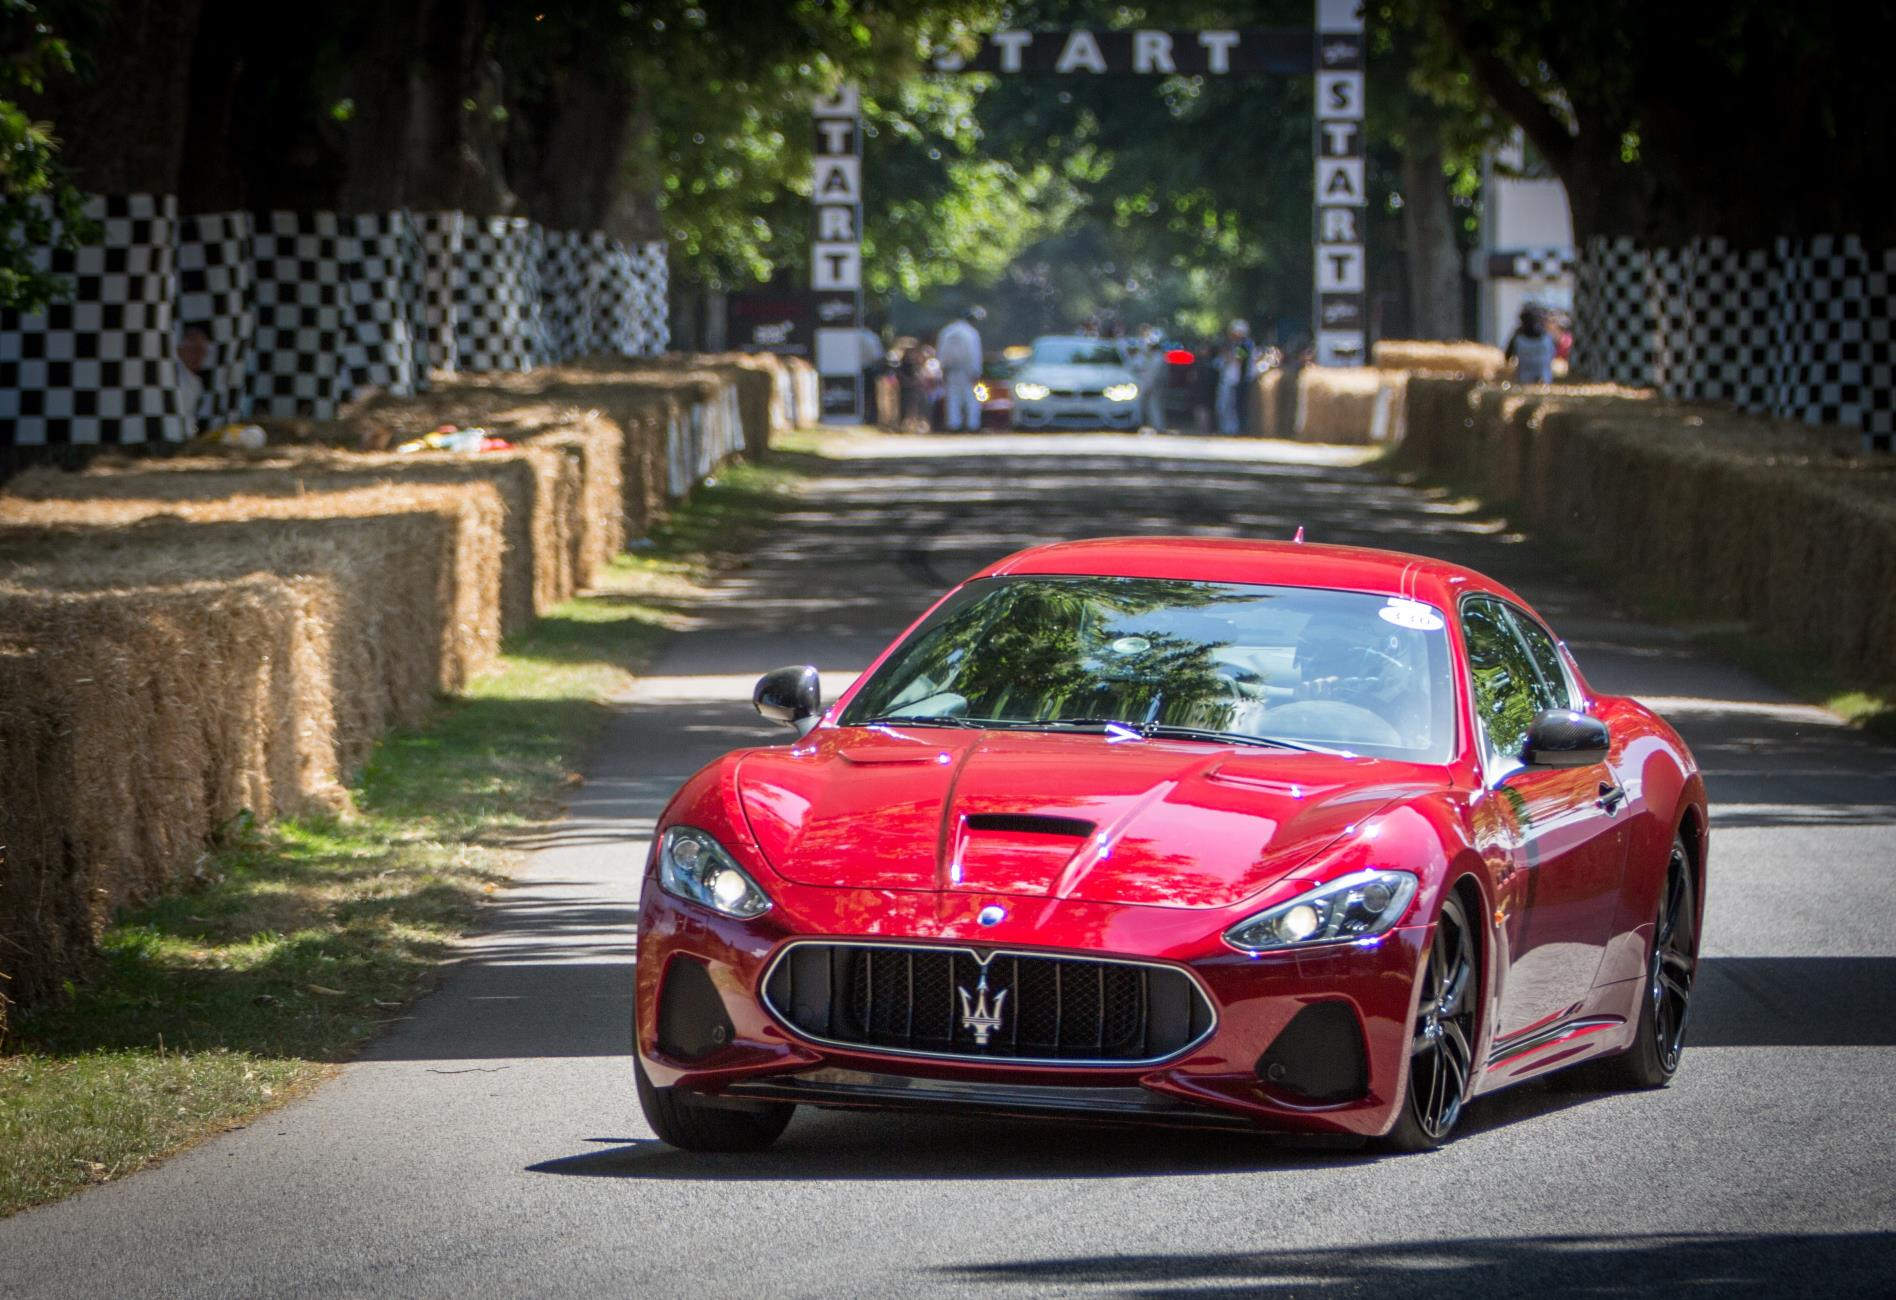 2018 Maserati GranTurismo Front Air Intakes and Grille Are So Fake ...